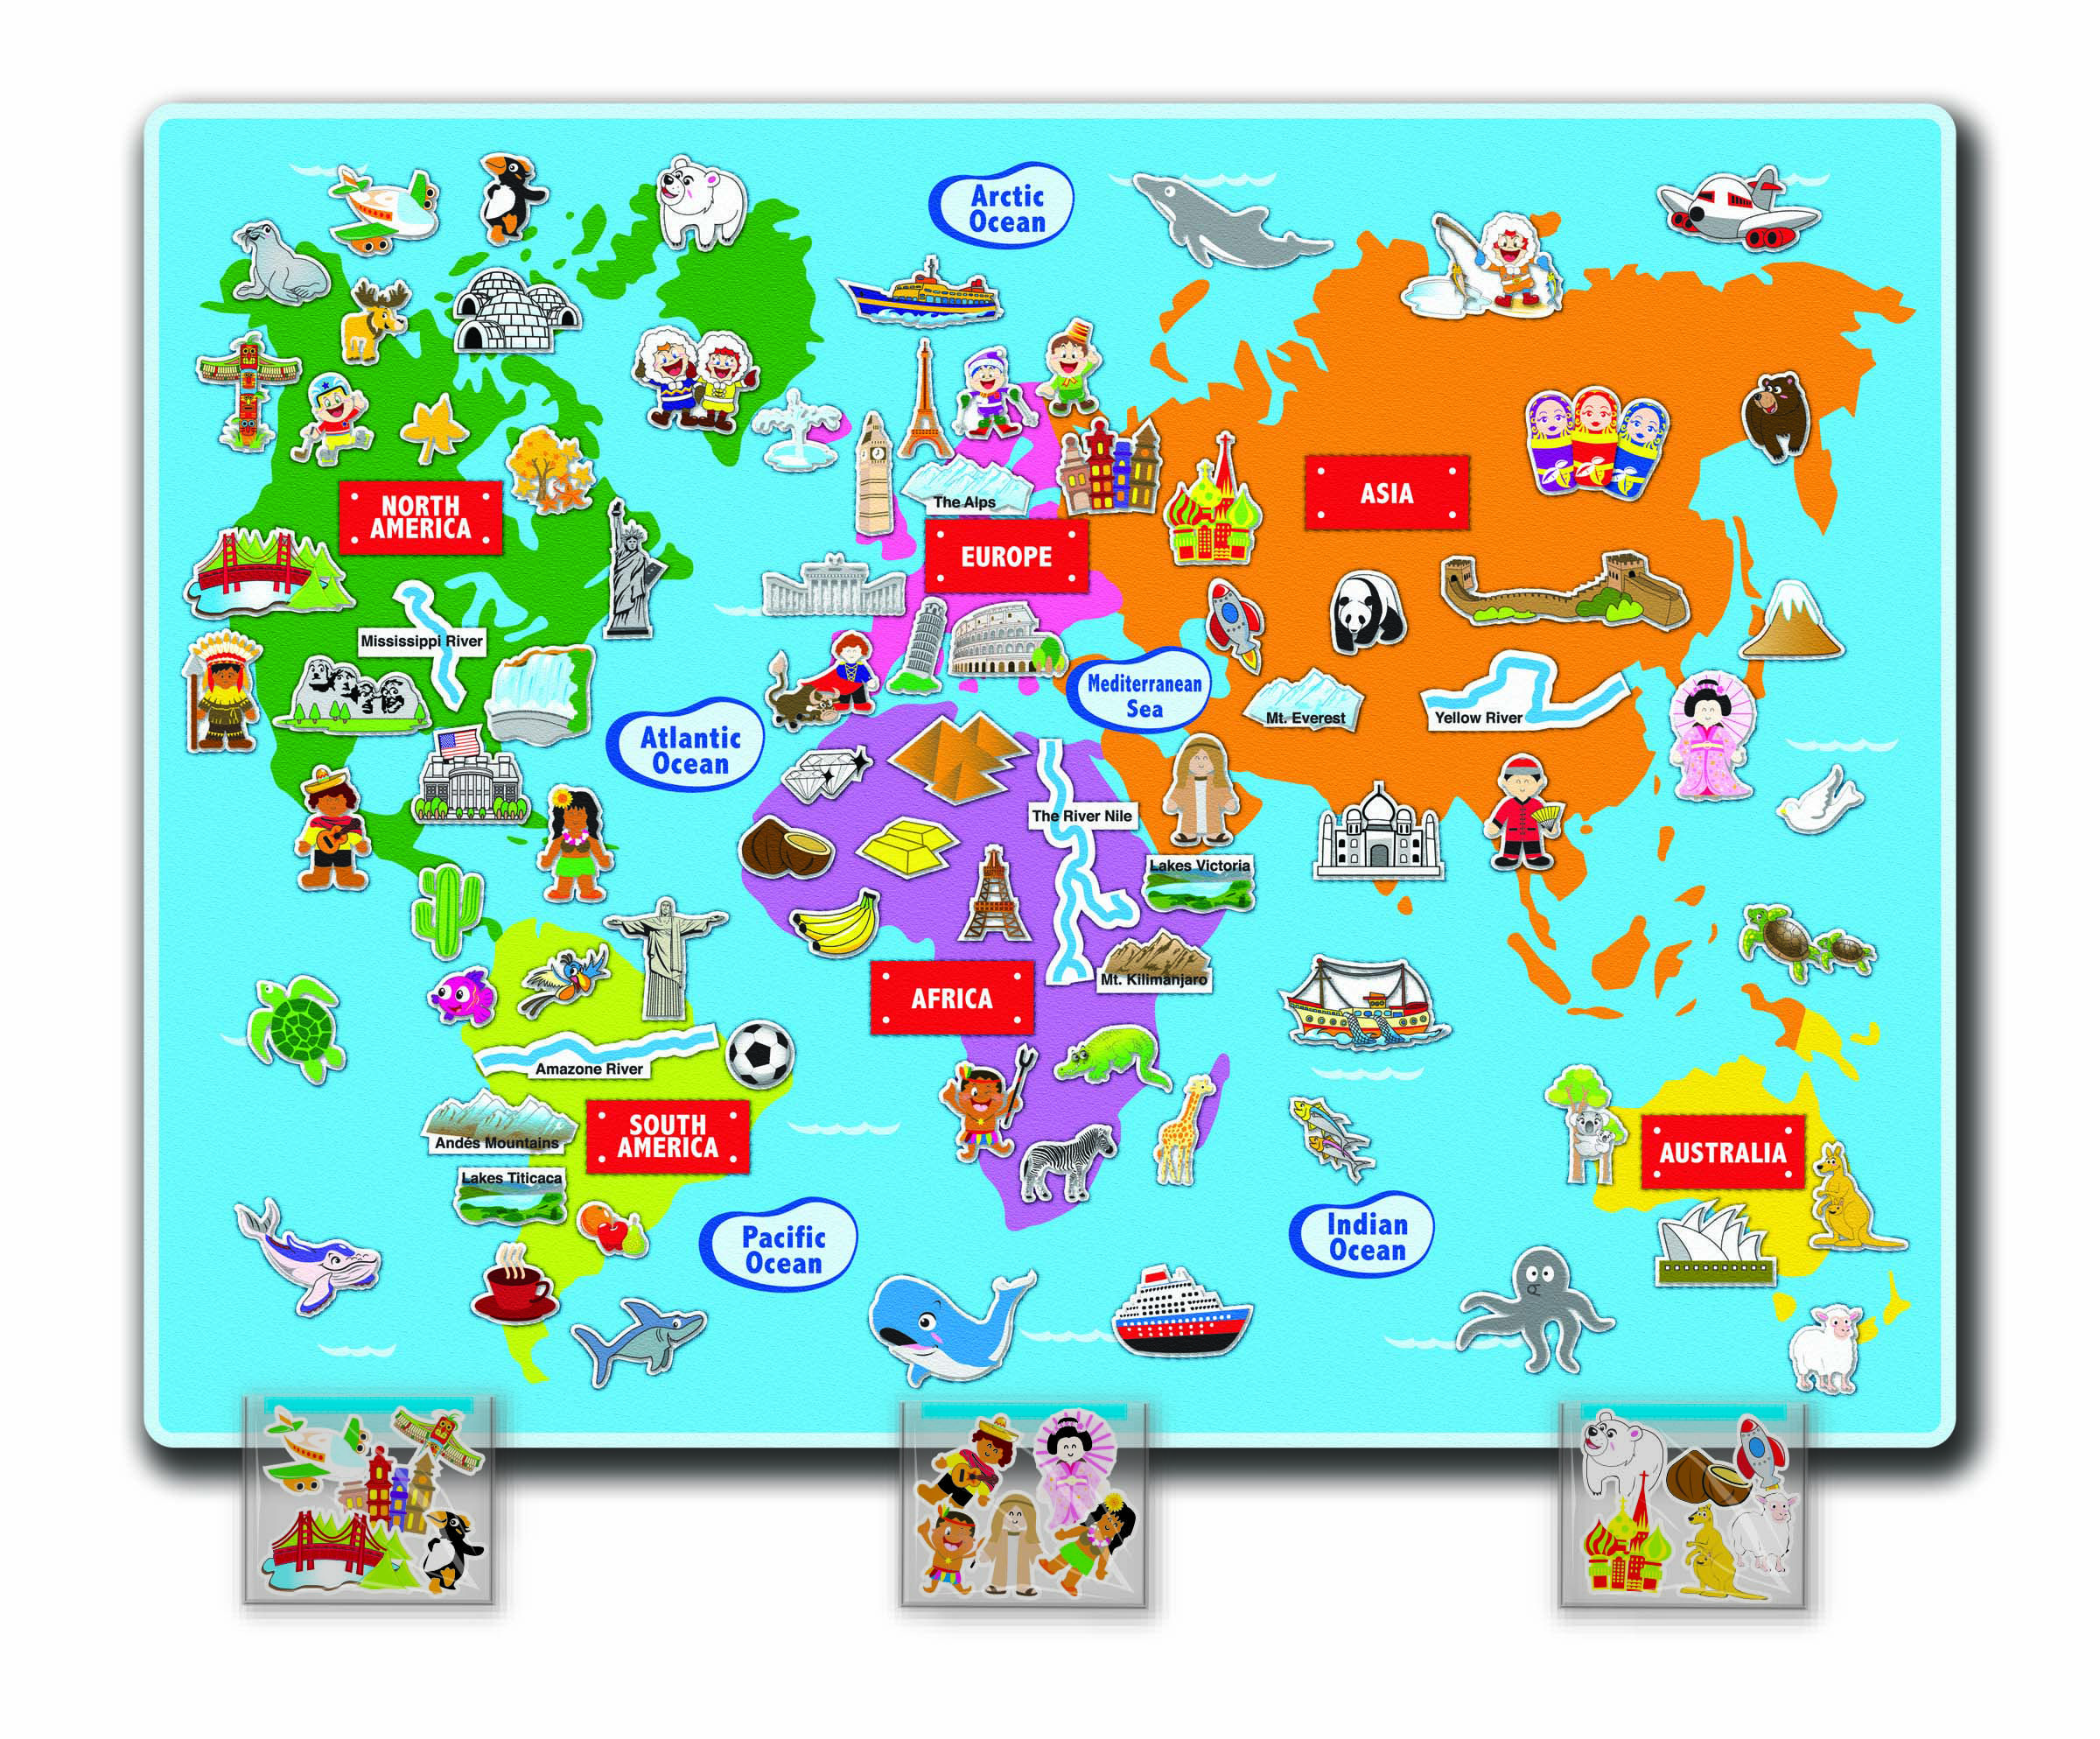 Felt creations felt world map a fun educational toy to assist felt creations felt world map a fun educational toy to assist children in understanding gumiabroncs Images